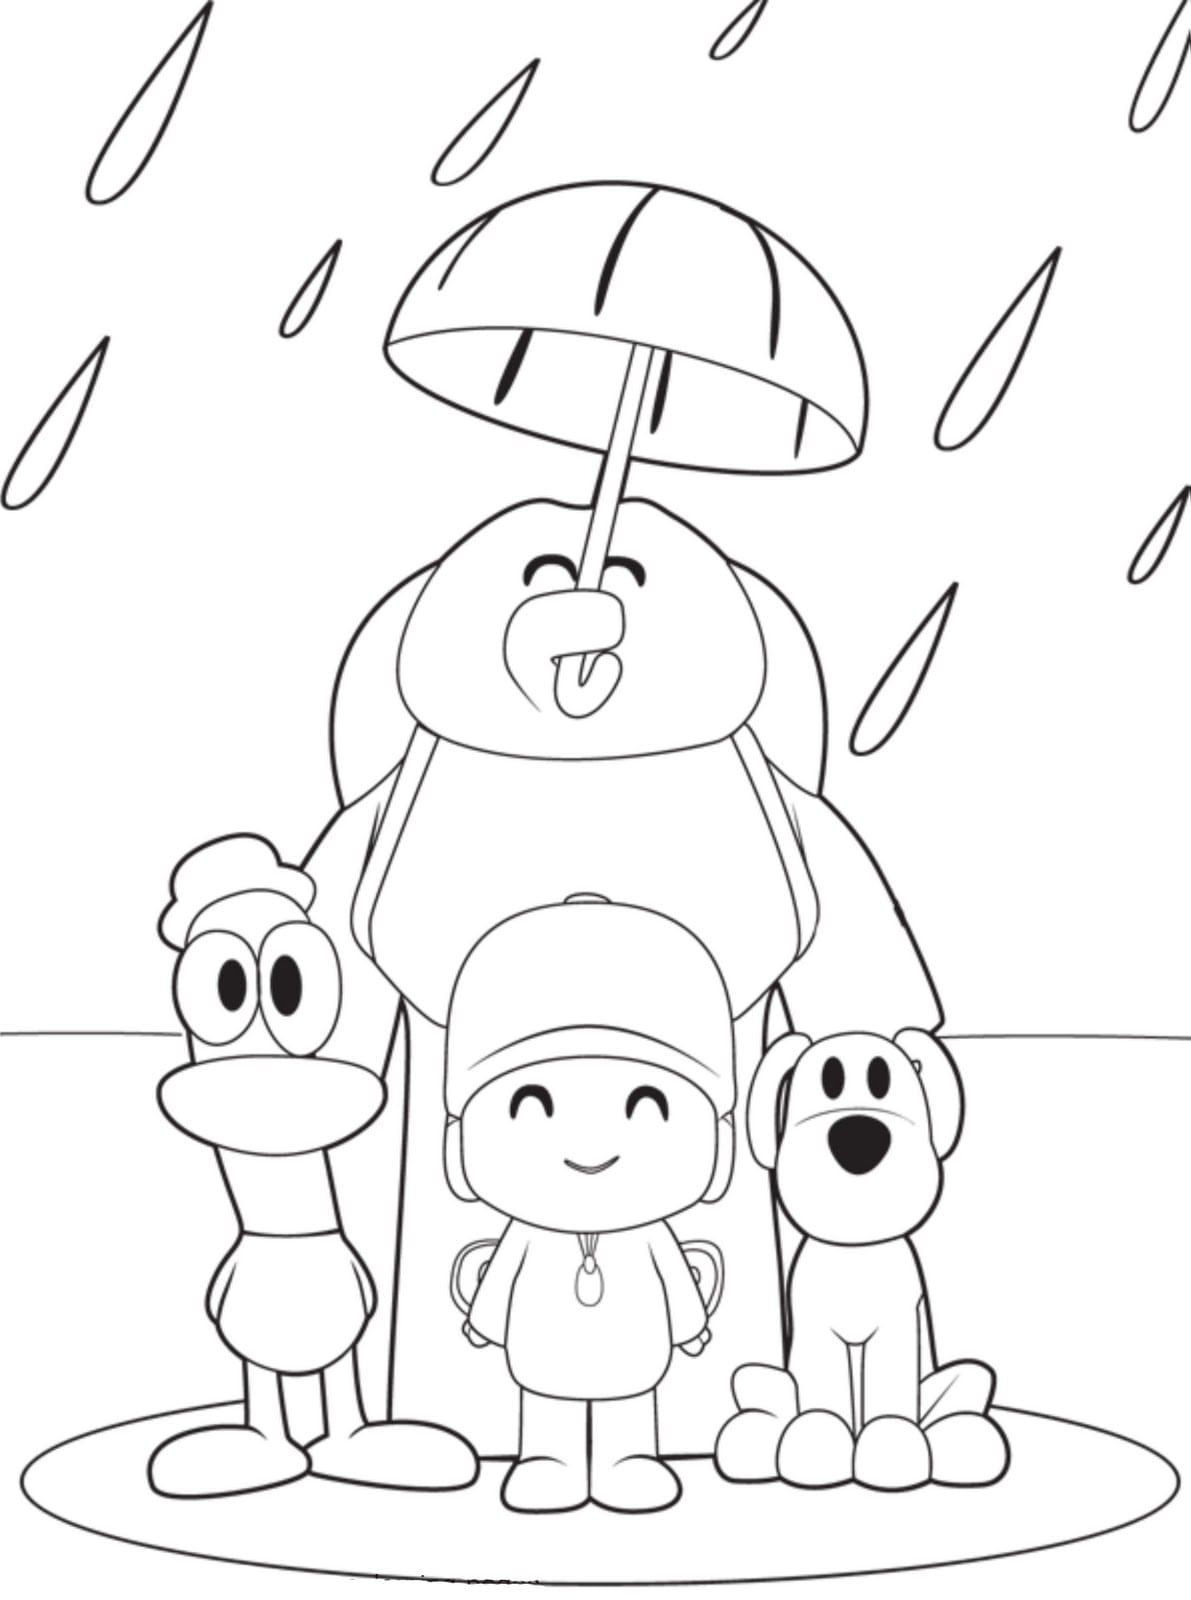 Pocoyo Coloring Pages Umbrella Coloring Page Cartoon Coloring Pages Barbie Coloring Pages